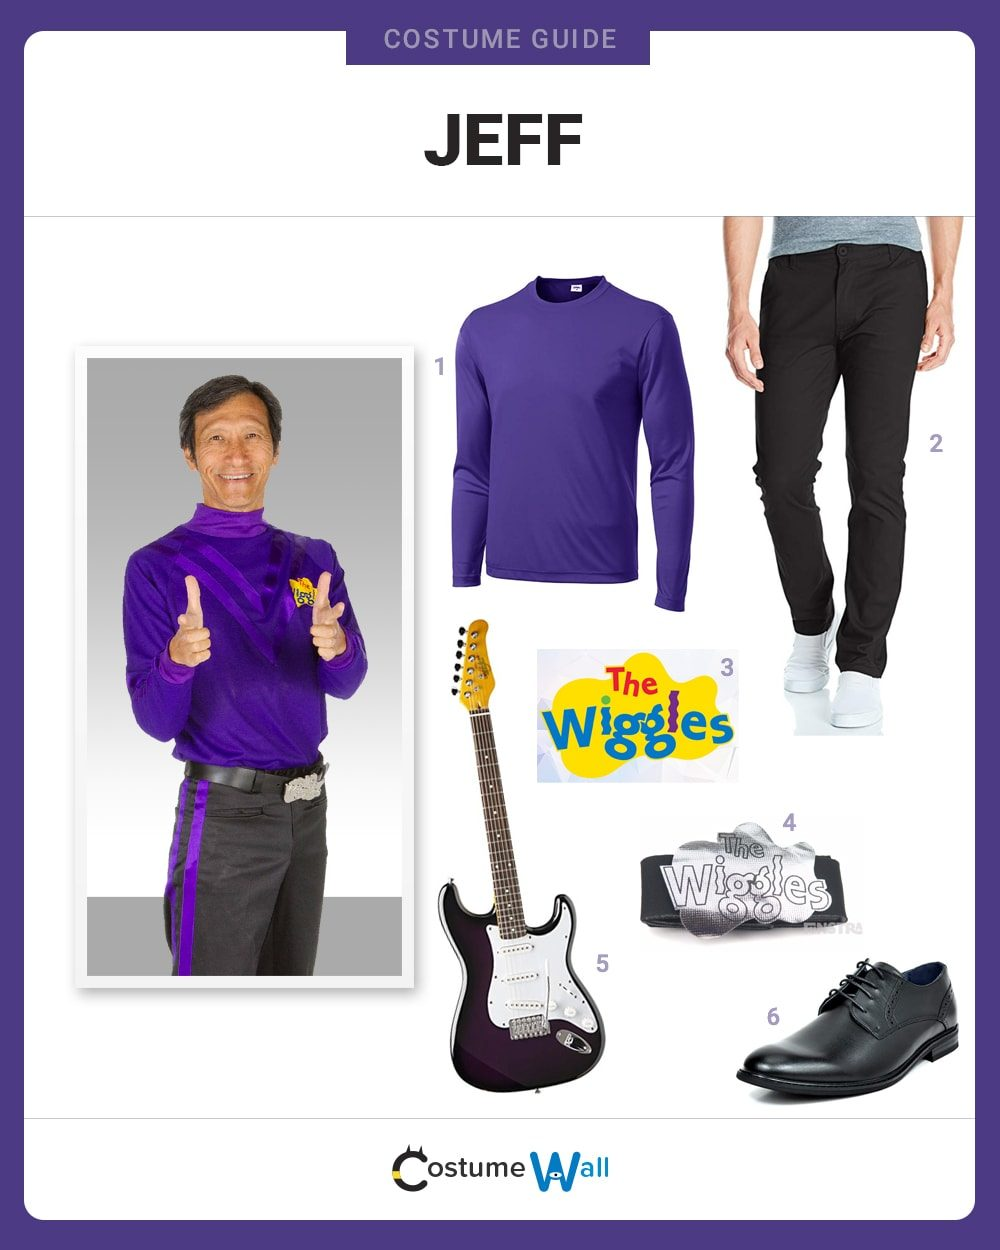 Jeff (The Wiggles) Costume Guide